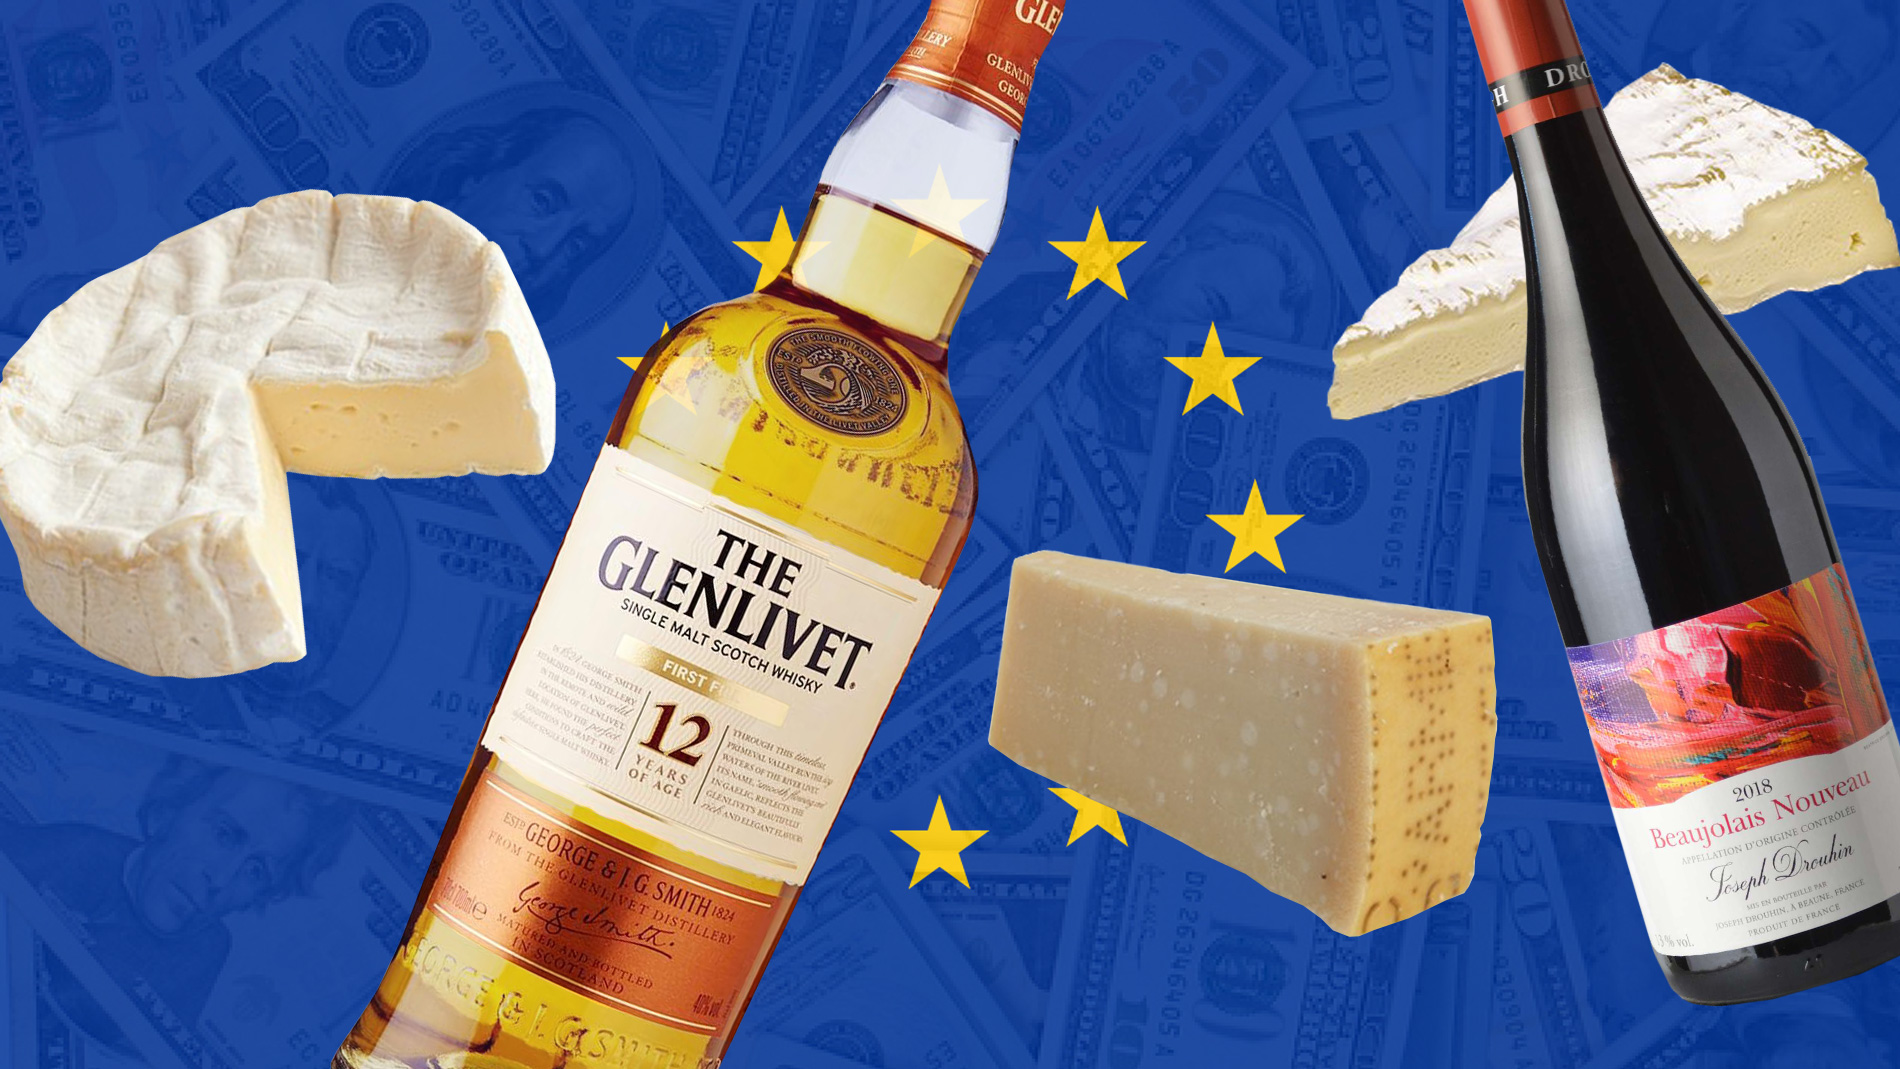 St. Louis wine, cheese shops discuss possible effects of EU tariffs